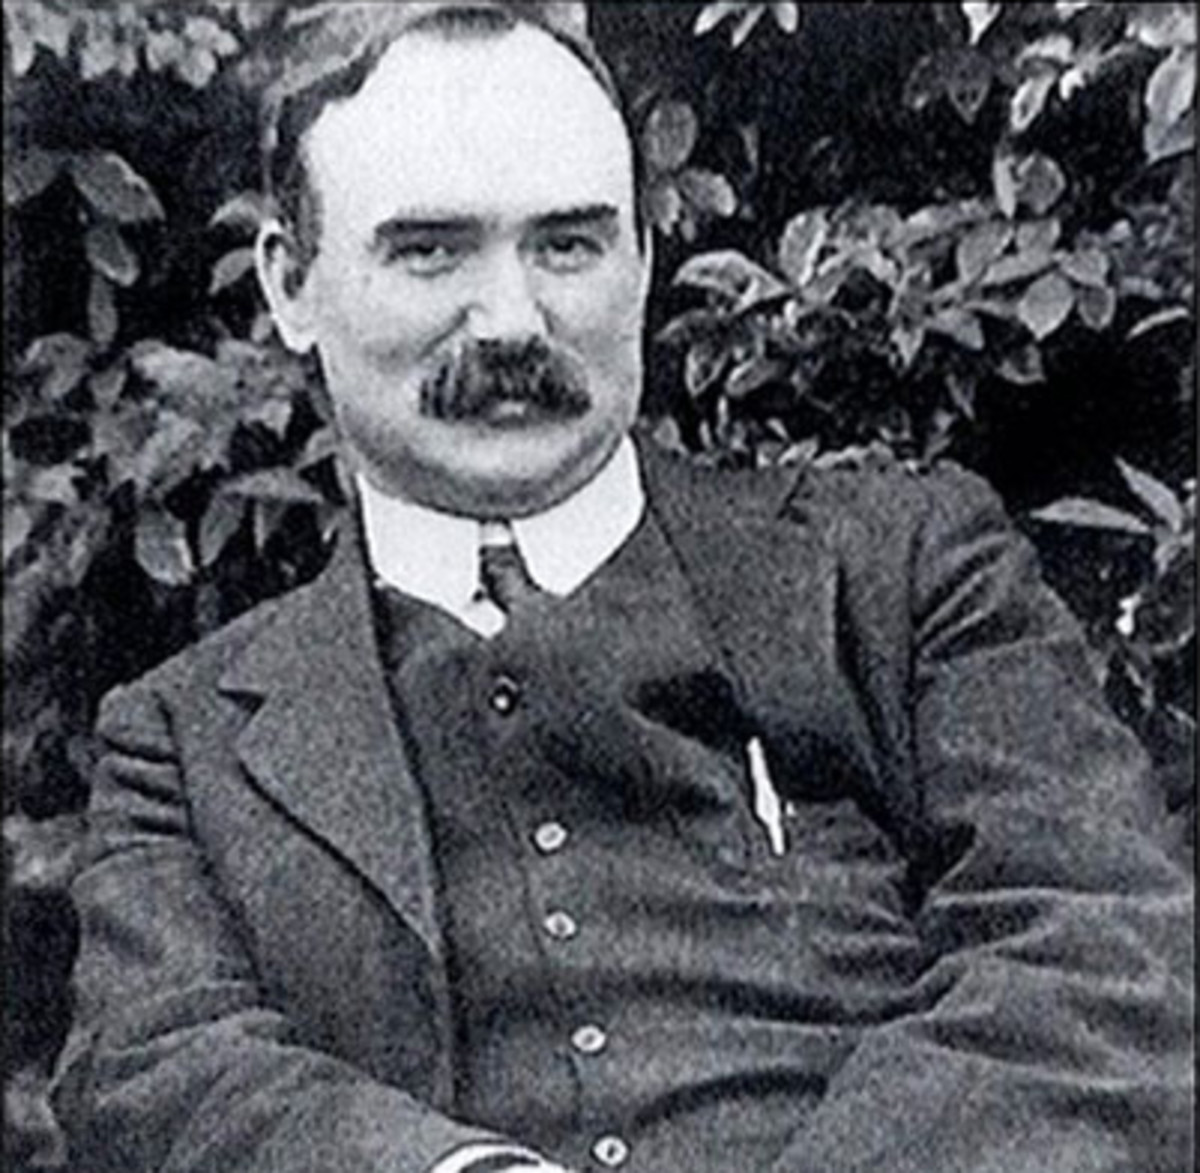 The CA's namesake, James Connolly